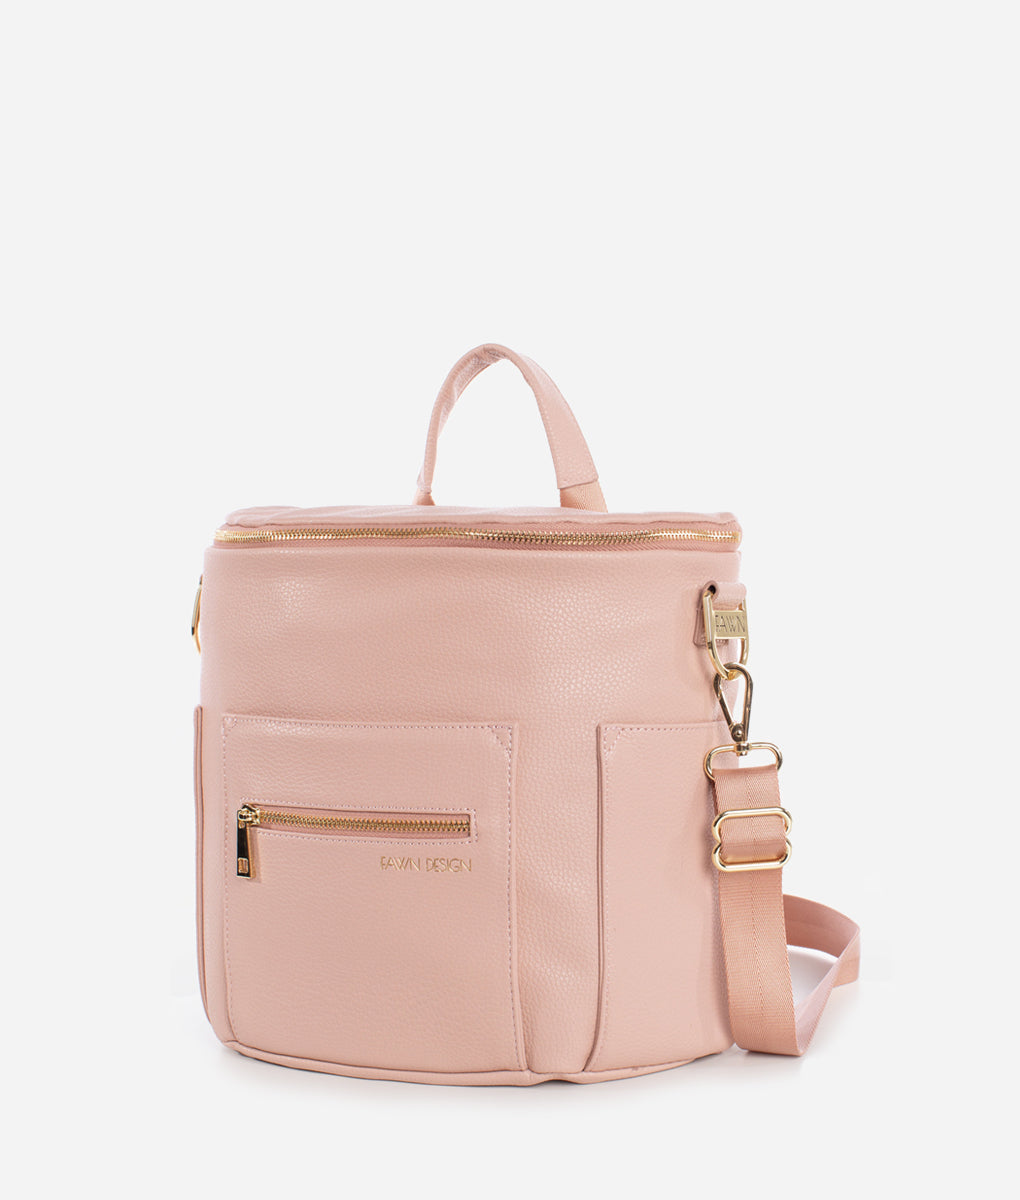 FAWN DESIGN MINI - BLUSH